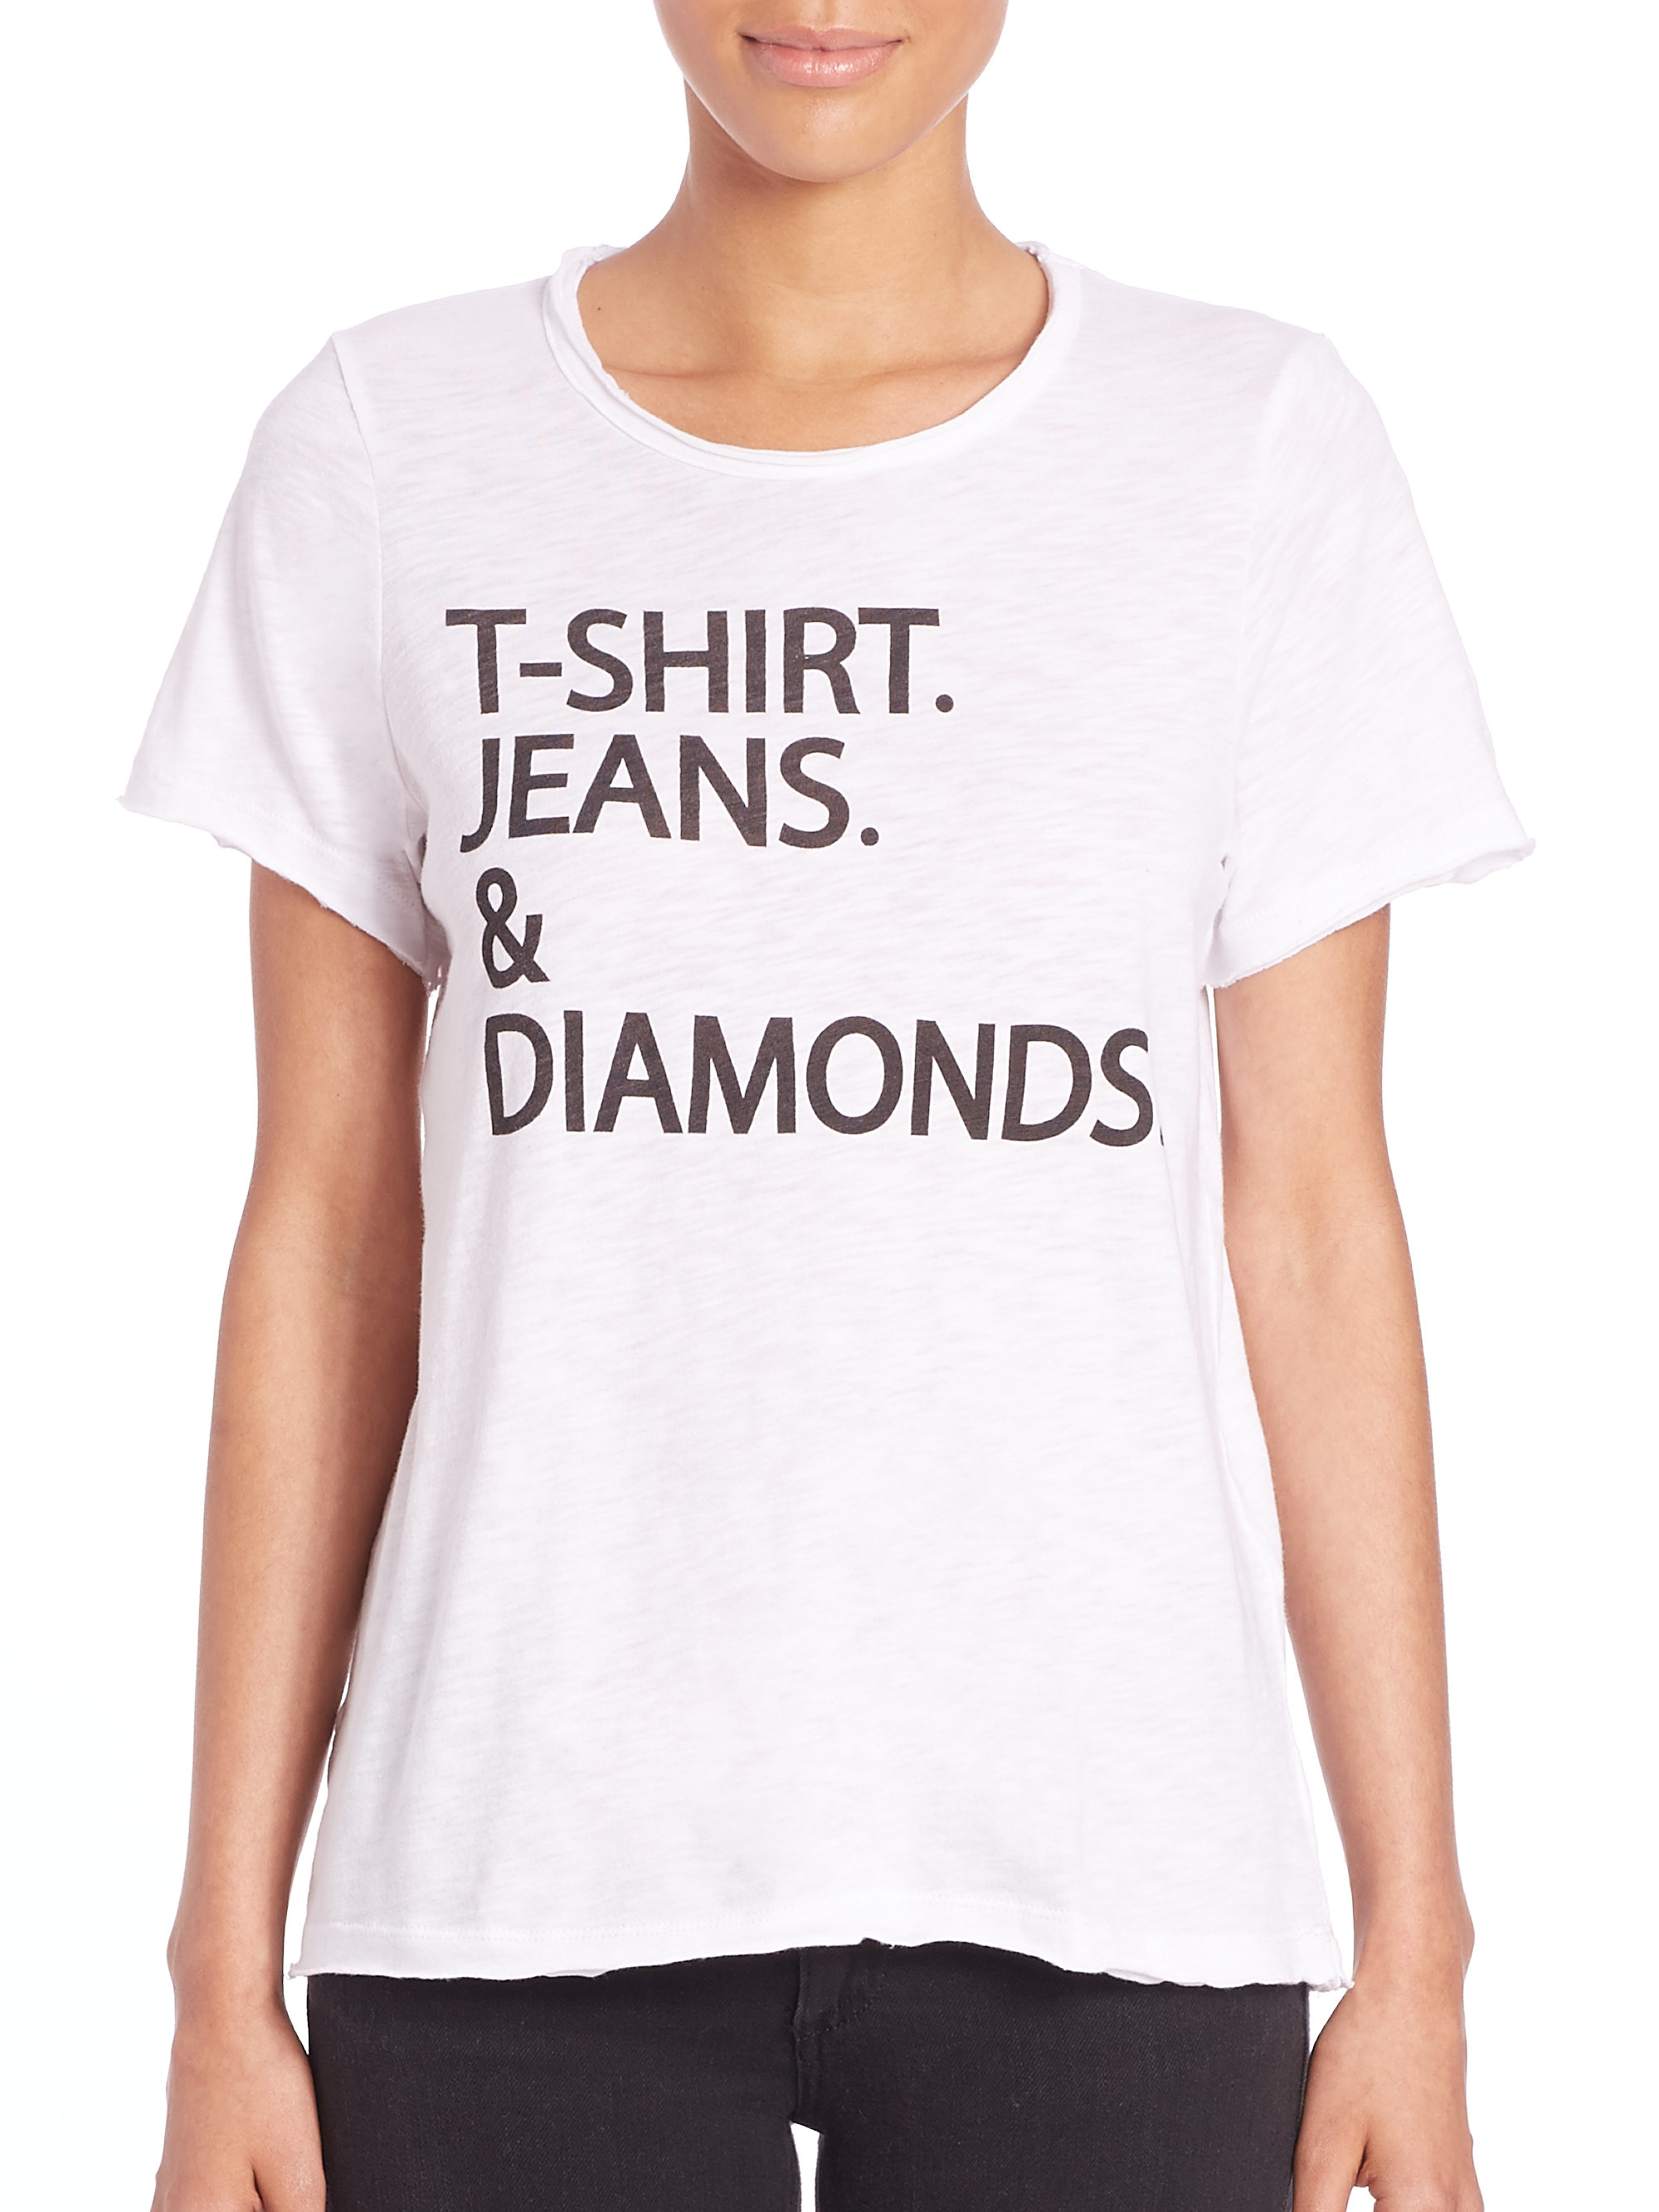 Chaser T-shirt. Jeans. u0026 Diamonds.u0026quot; Short-sleeve Tee in White | Lyst